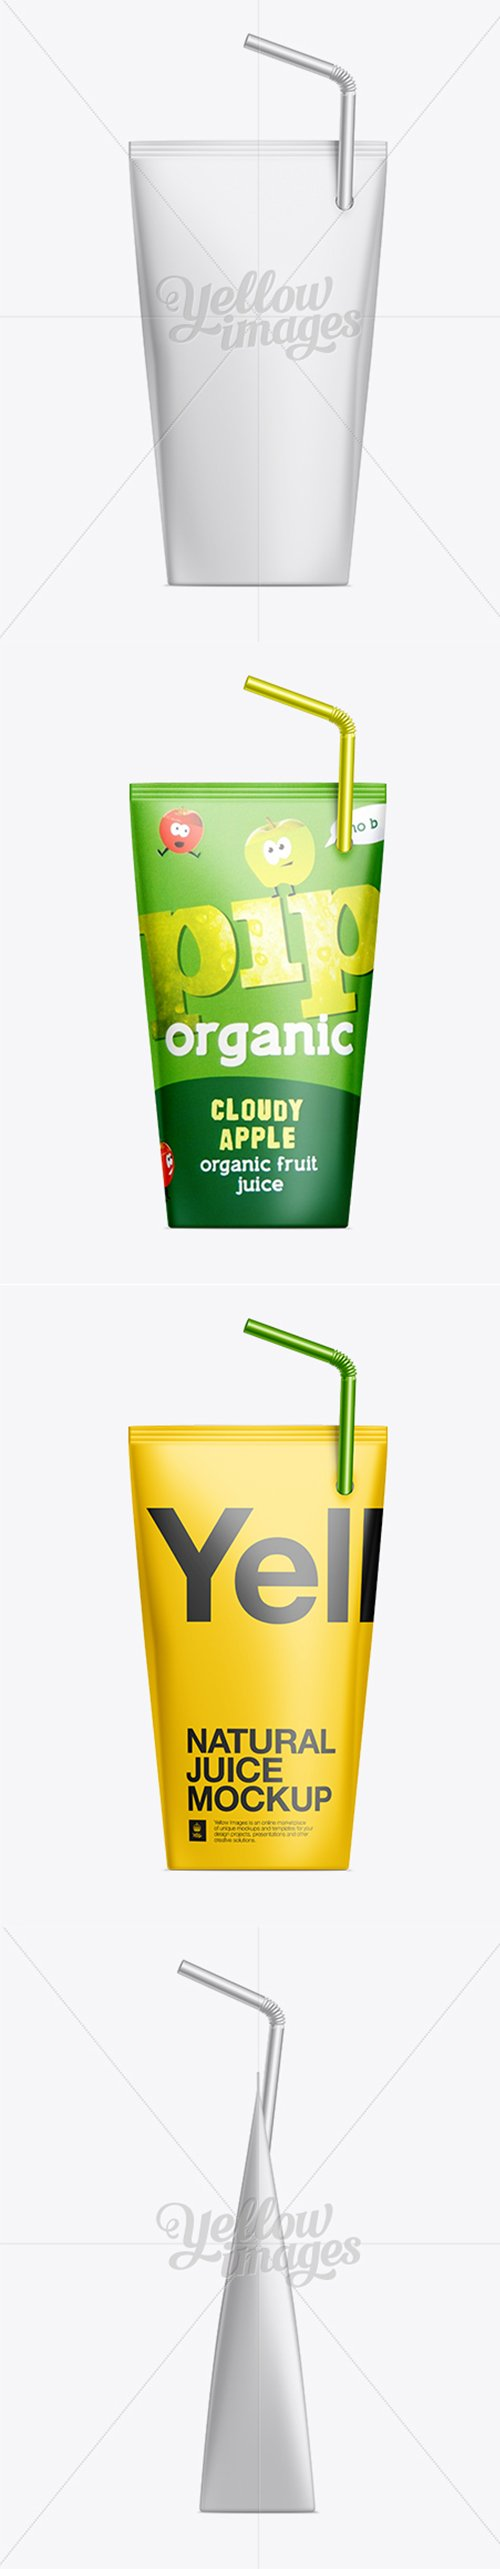 200ml Juice Package with Straw Mockup 10100 TIF